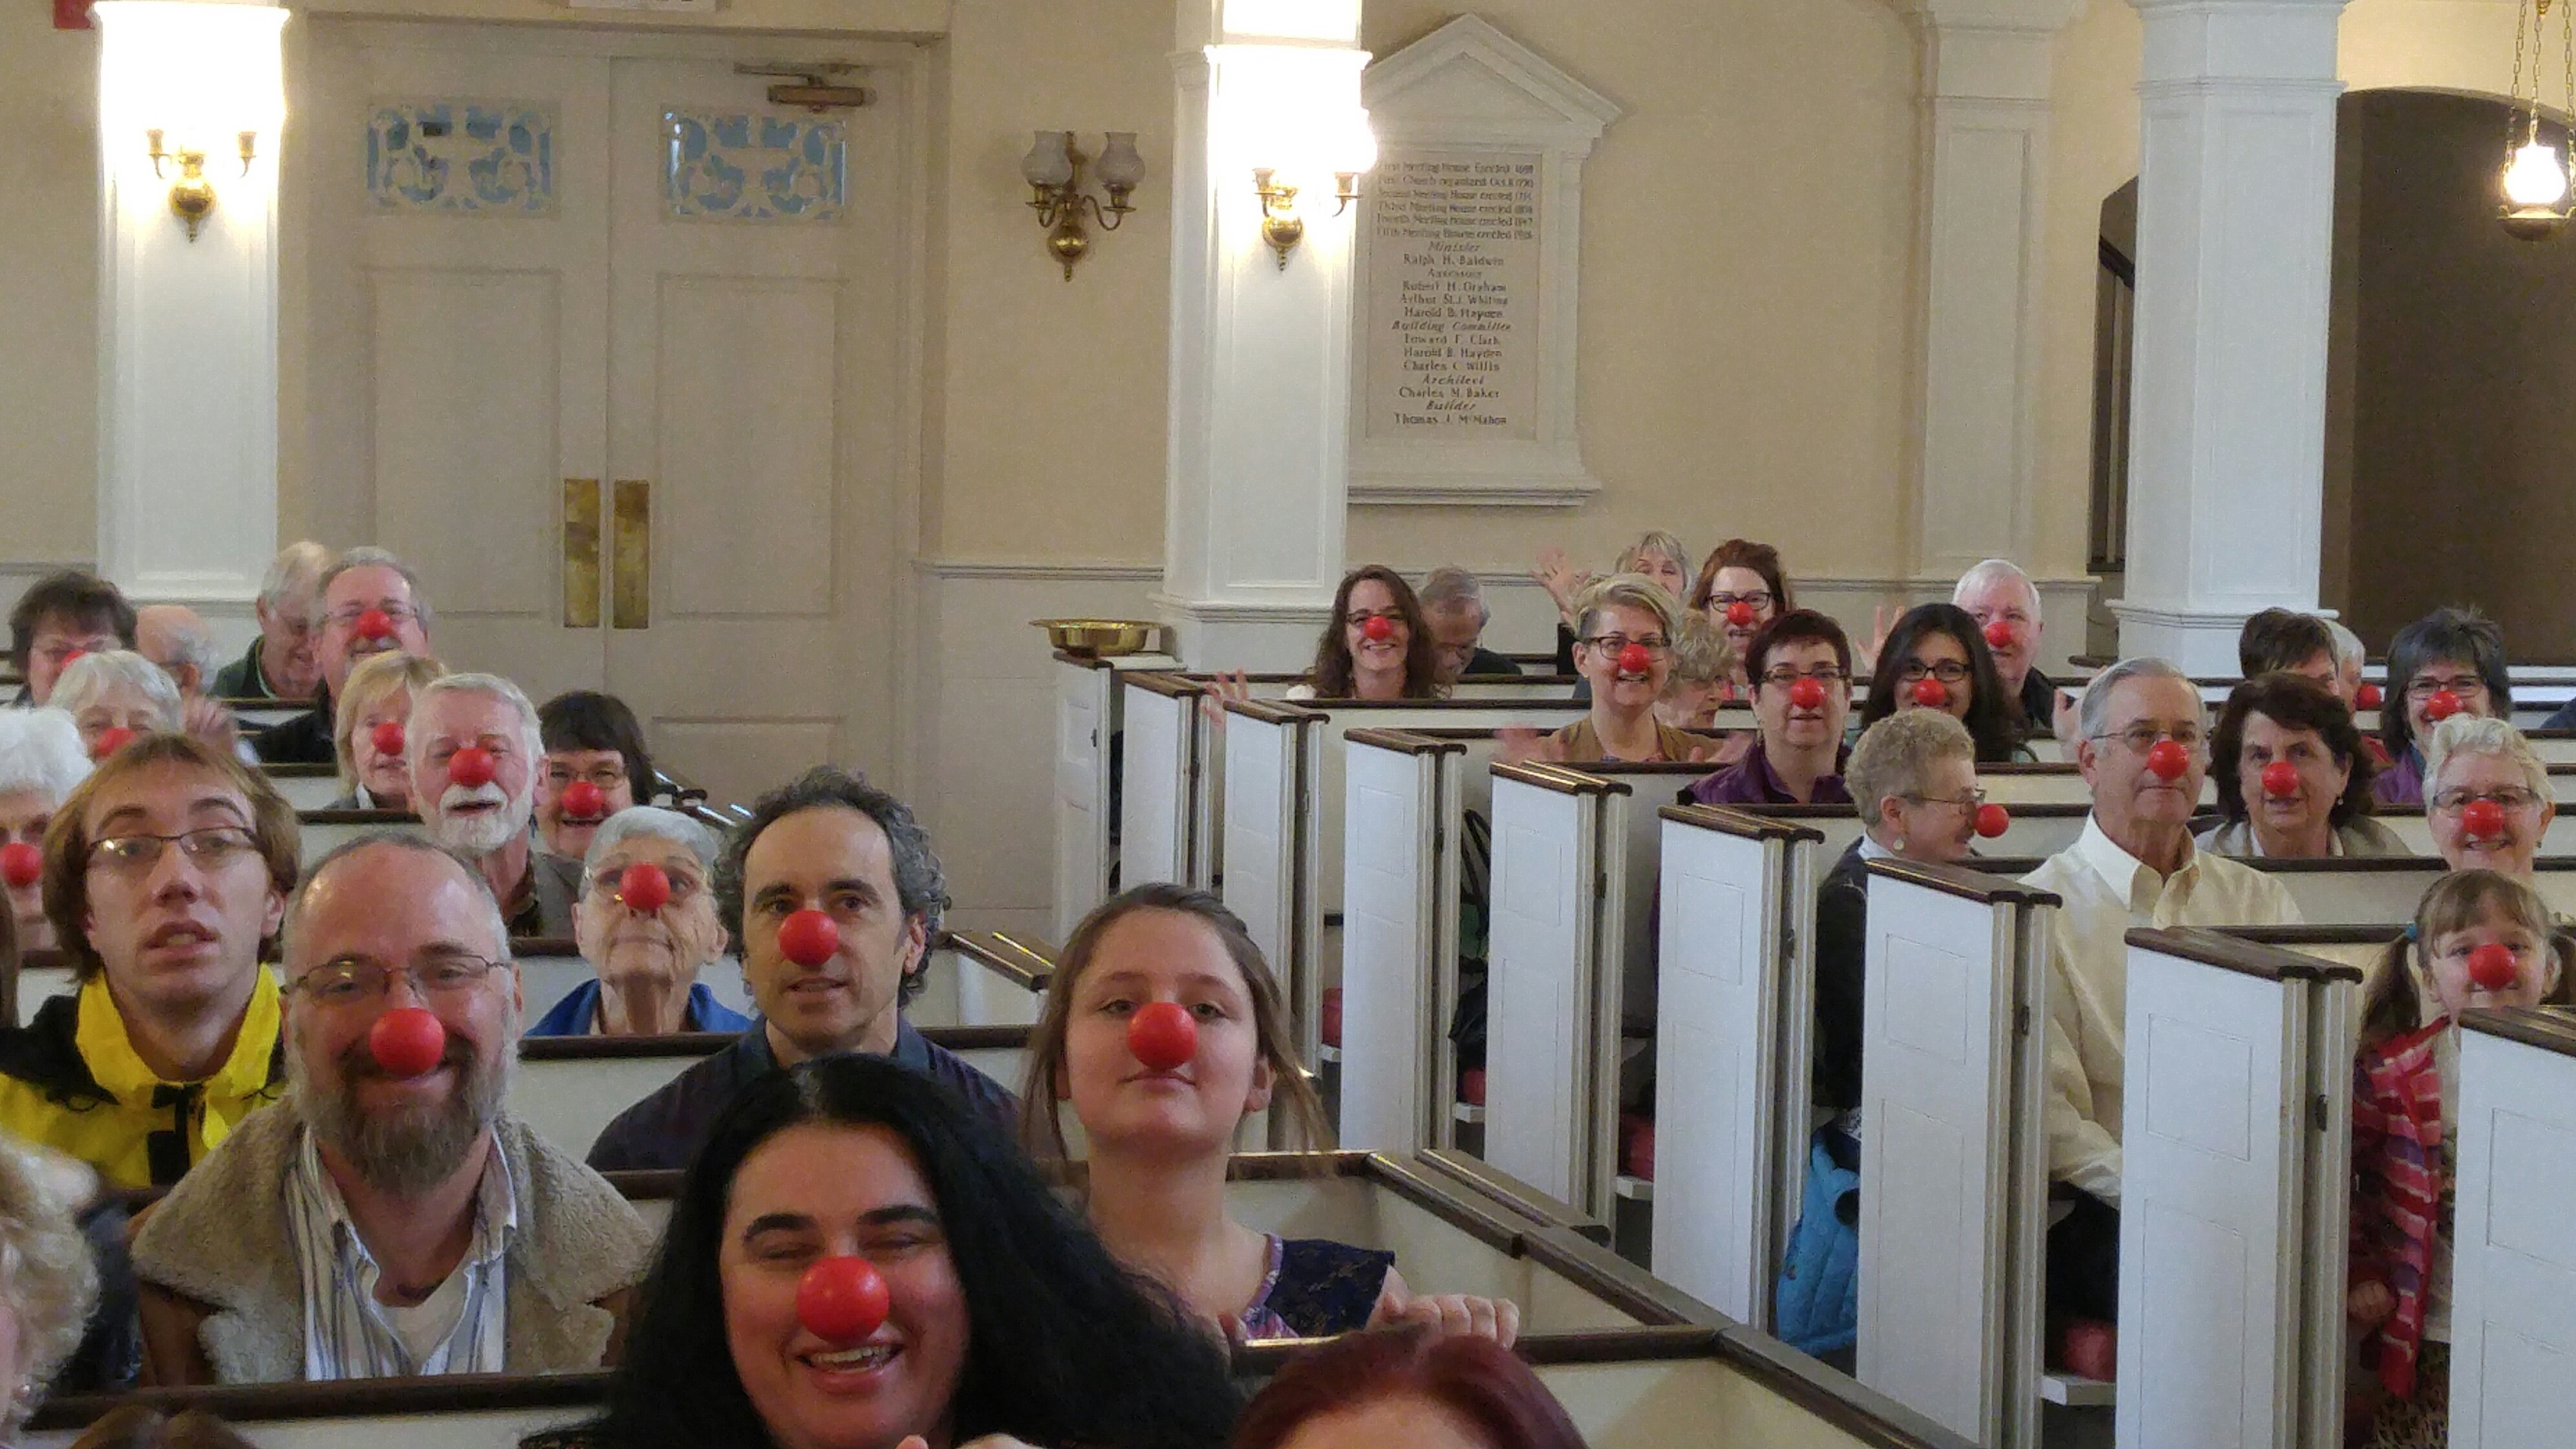 Congregation in pes, wearing red noses.